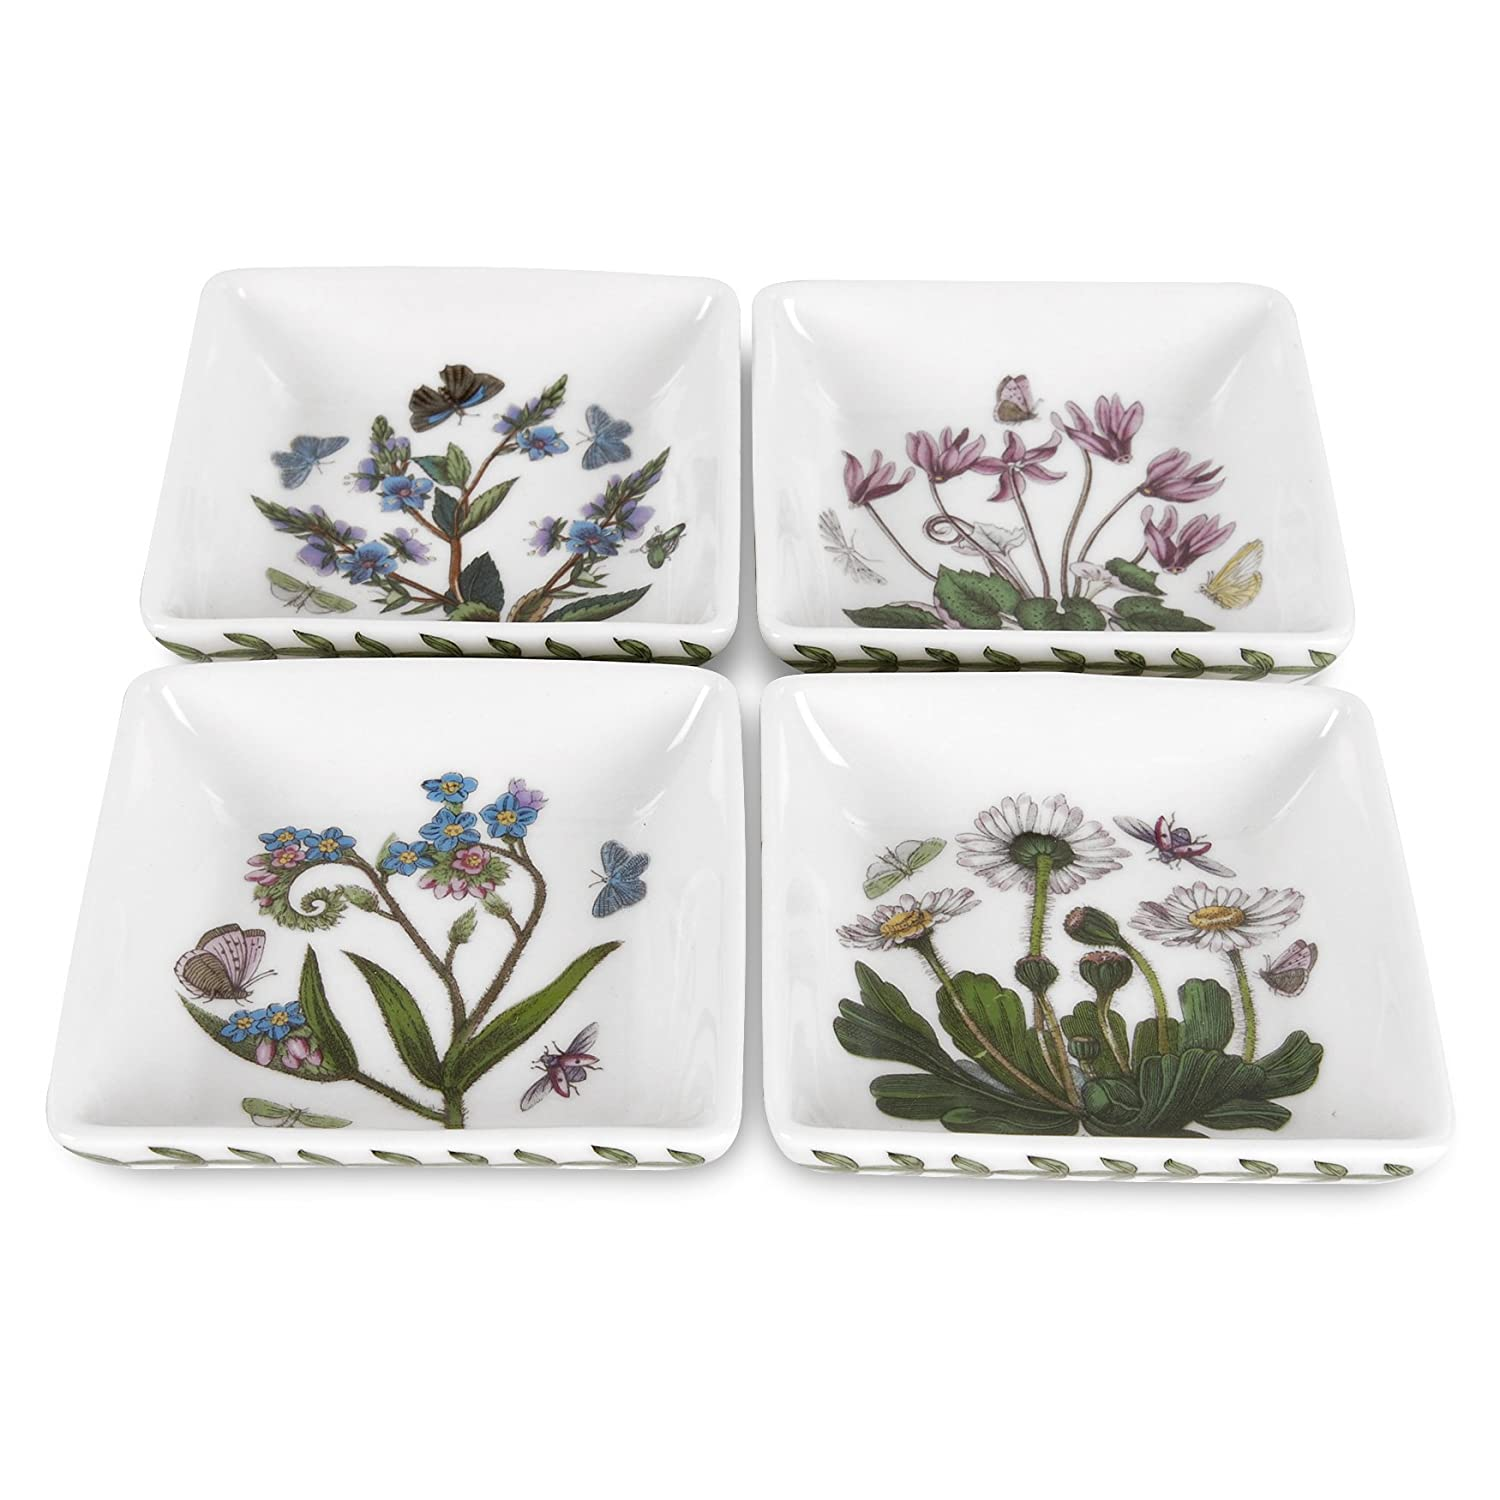 Portmeirion Botanic Garden 3-Inch Square Mini Dishes, Set of 4 605207